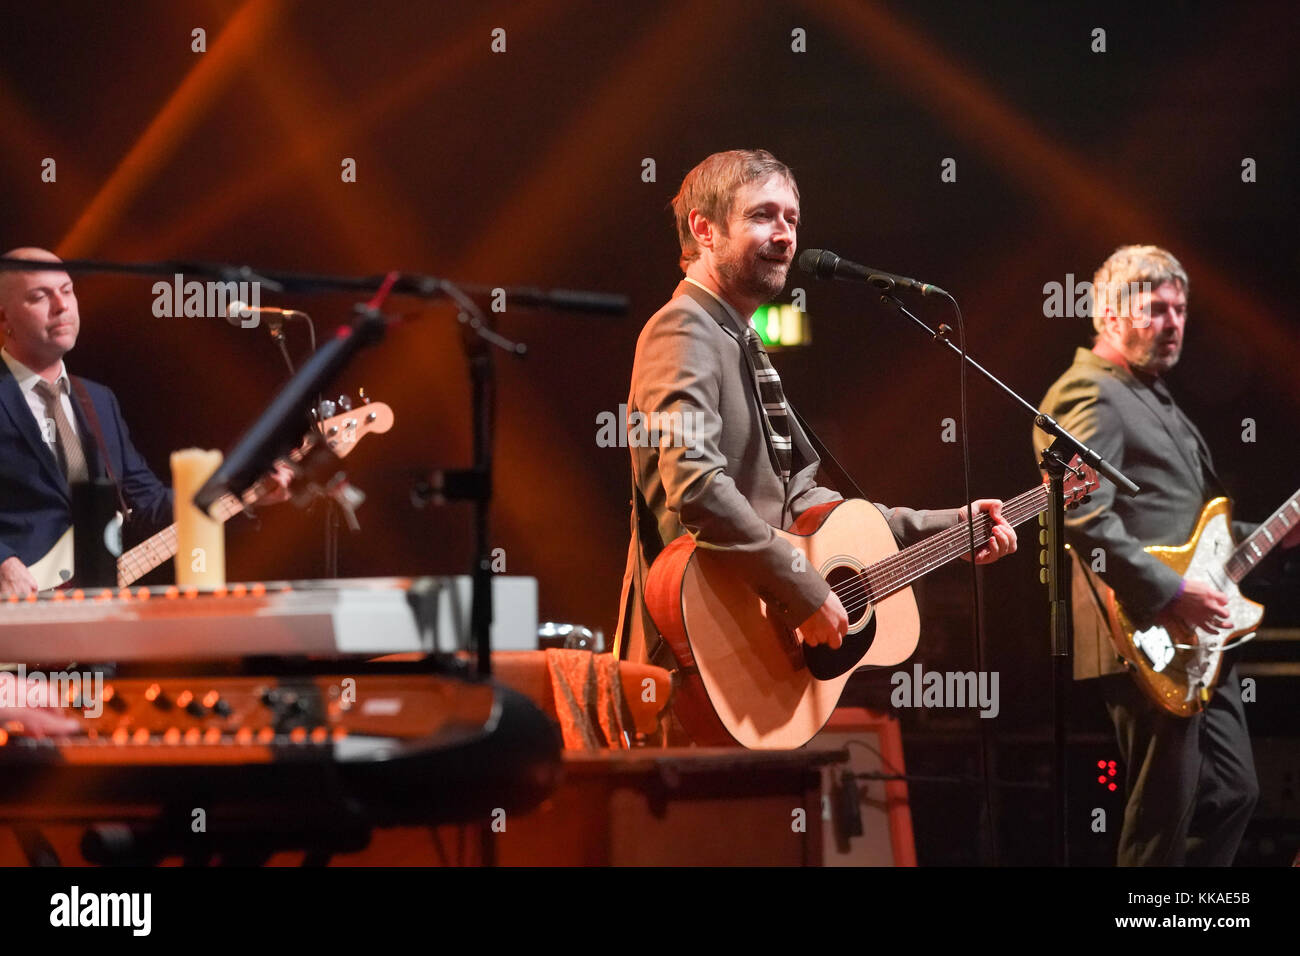 London, UK. 29th Nov, 2017. Neil Hannon of The Divine Comedy performing live on stage at the Hammersmith Apollo - Stock Image